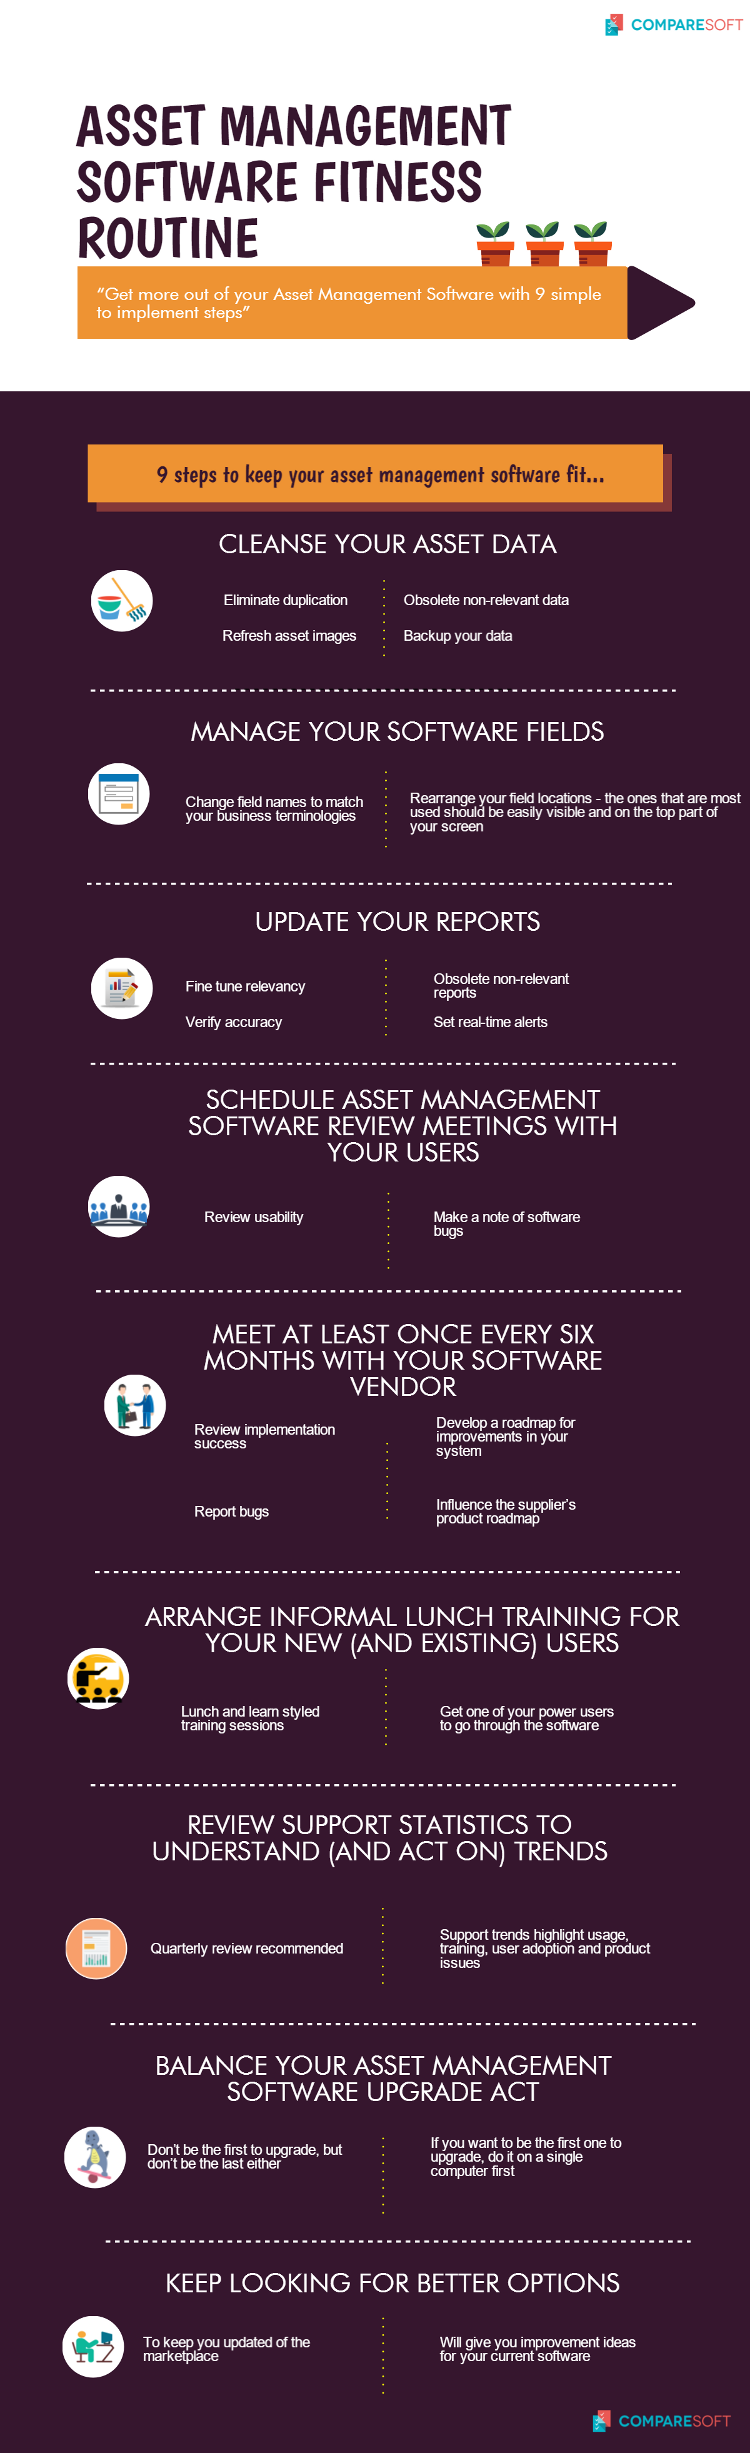 How to keep your Asset Management Software Fit